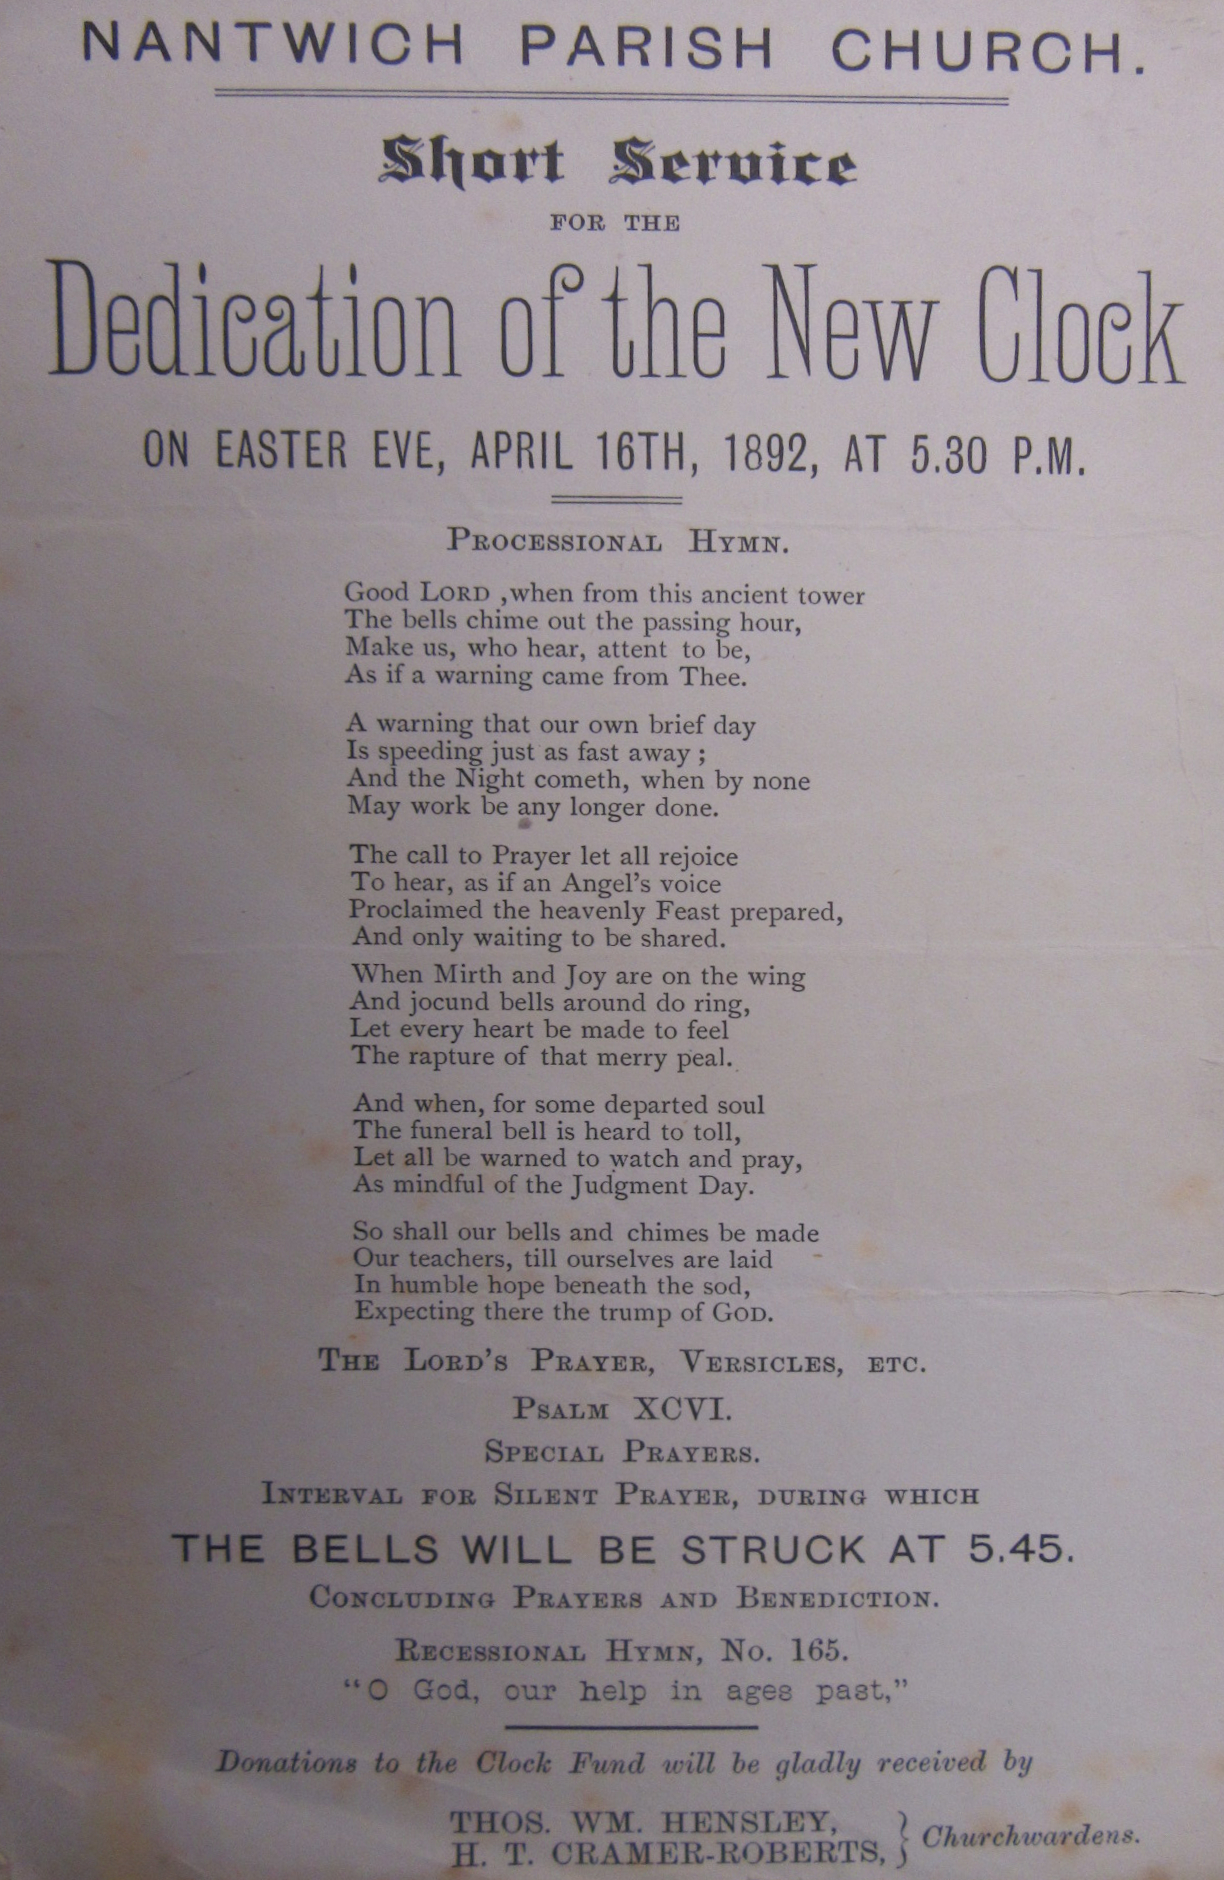 Nantwich Clock (1892) Service of Dedication Sheet